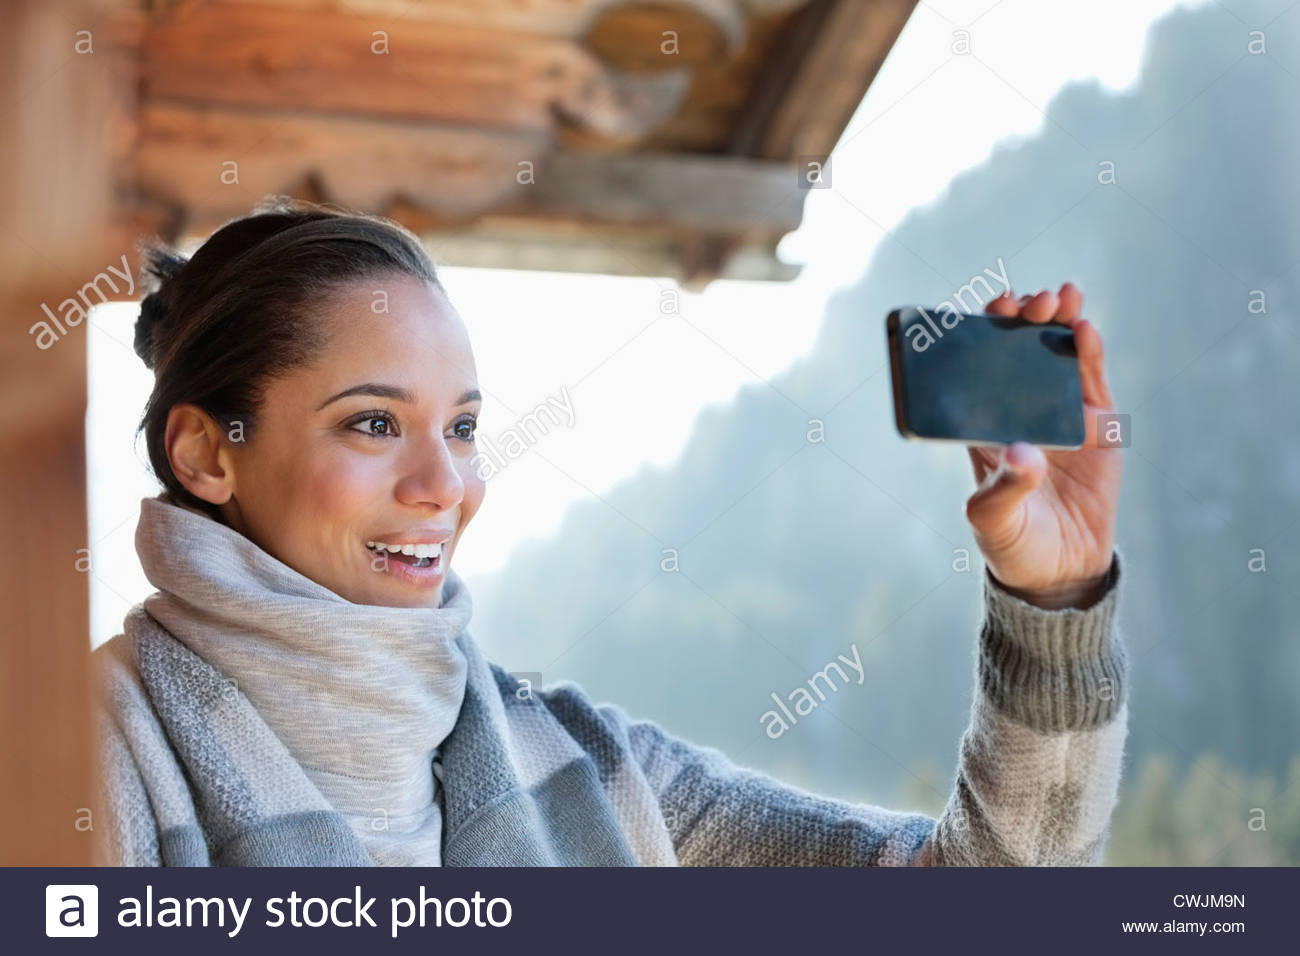 Smiling woman taking photograph with camera phone - Stock Image